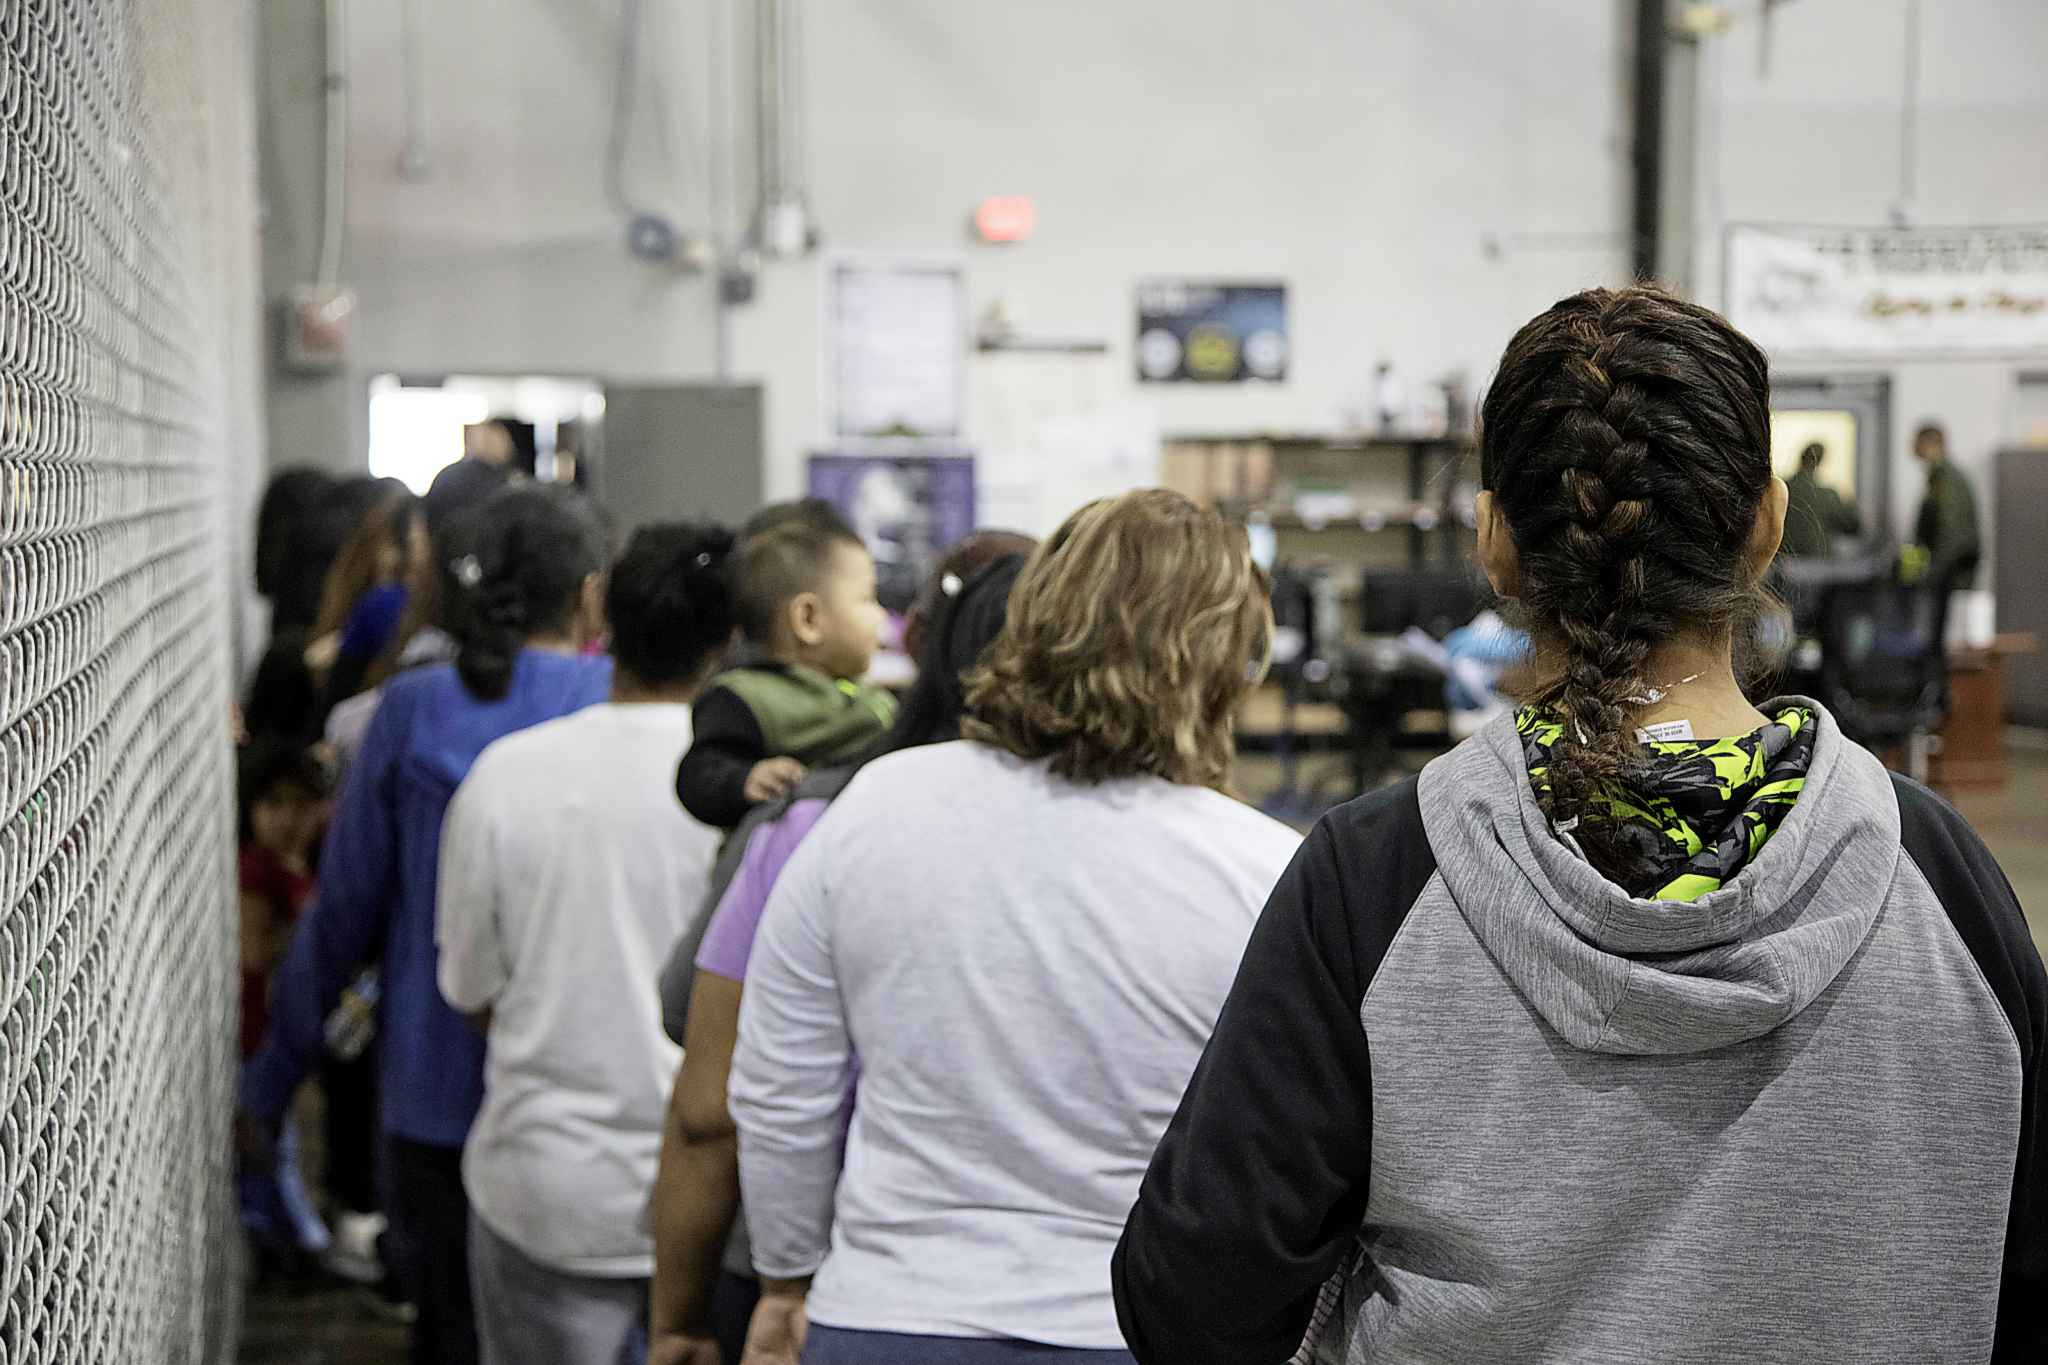 In this photo provided by U.S. Customs and Border Protection, people who've been taken into custody related to cases of illegal entry into the United States, stand in line at a facility in McAllen, Texas, Sunday, June 17, 2018. (U.S. Customs and Border Protection's Rio Grande Valley Sector / The Associated Press)